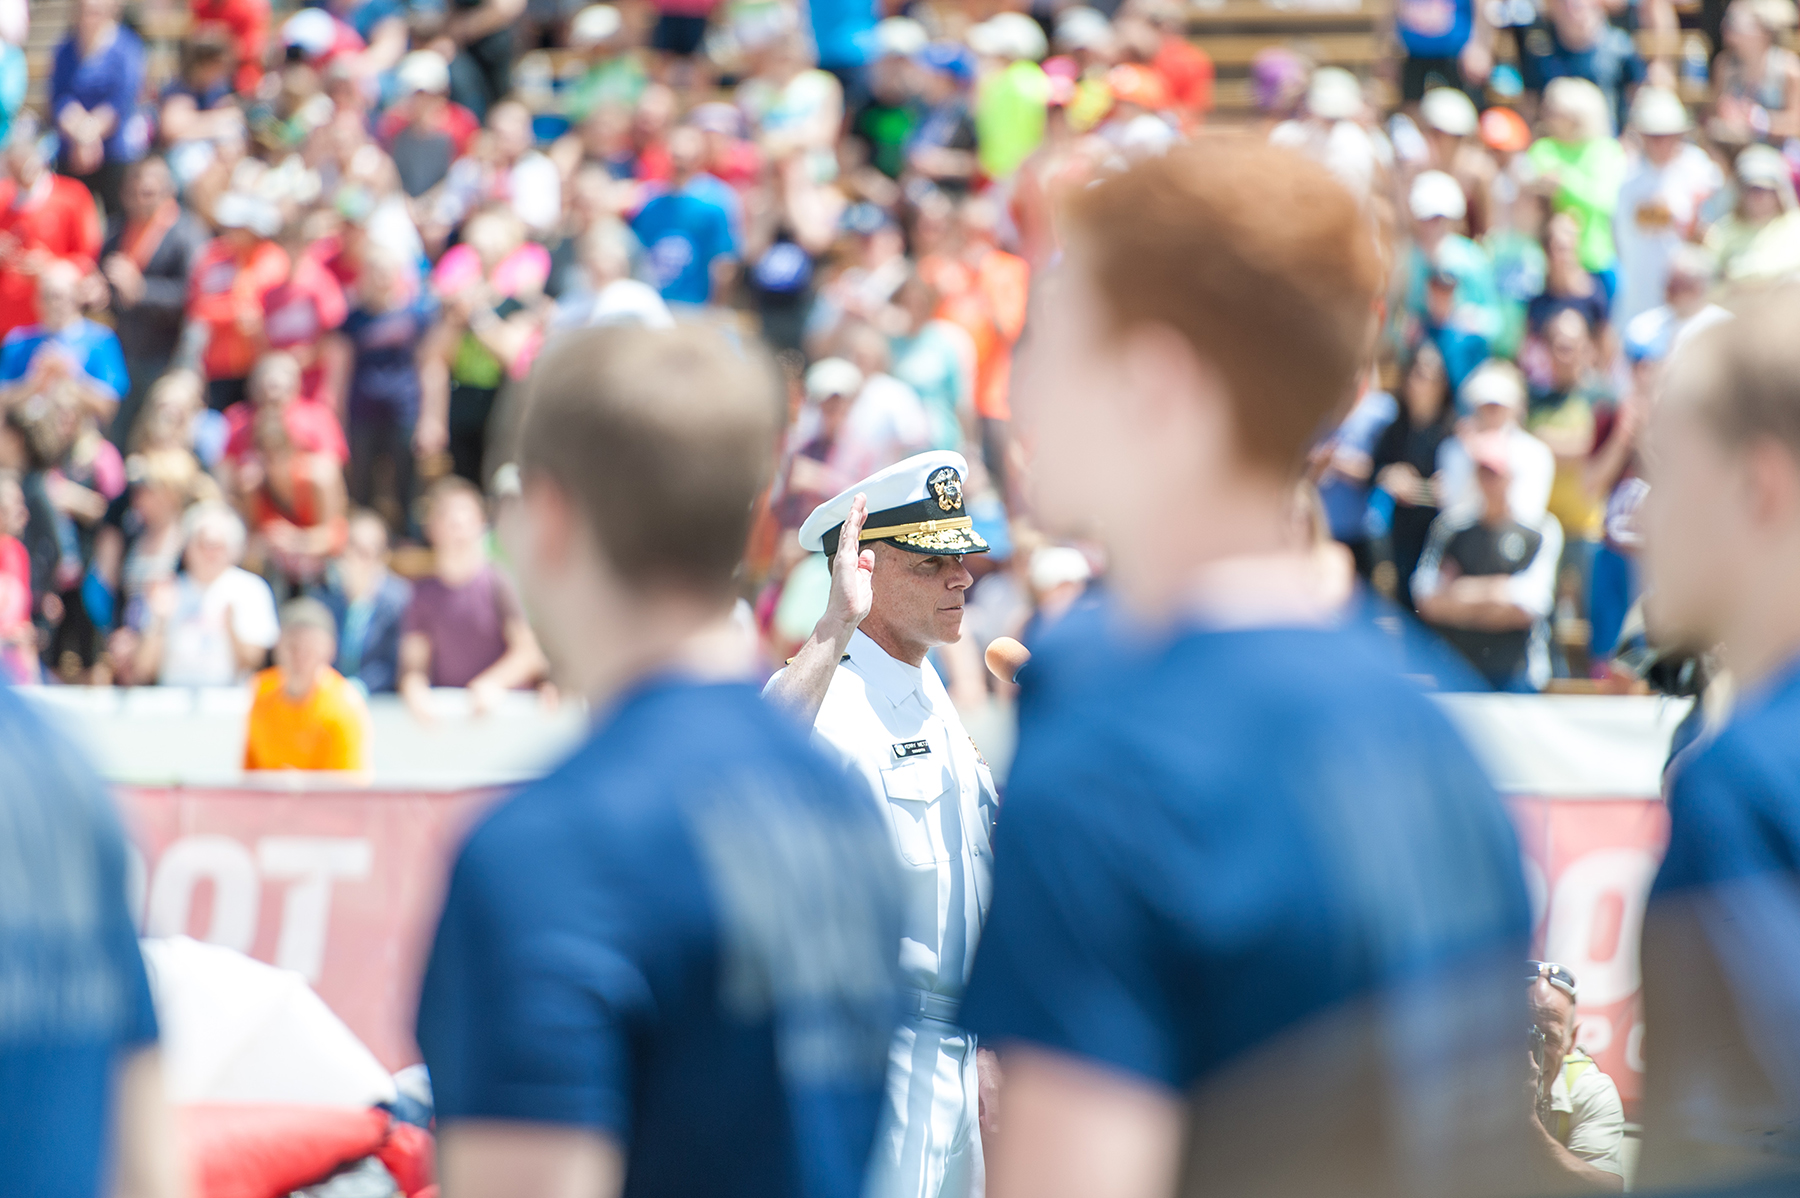 Gameface-BolderBoulder-HighRes-213